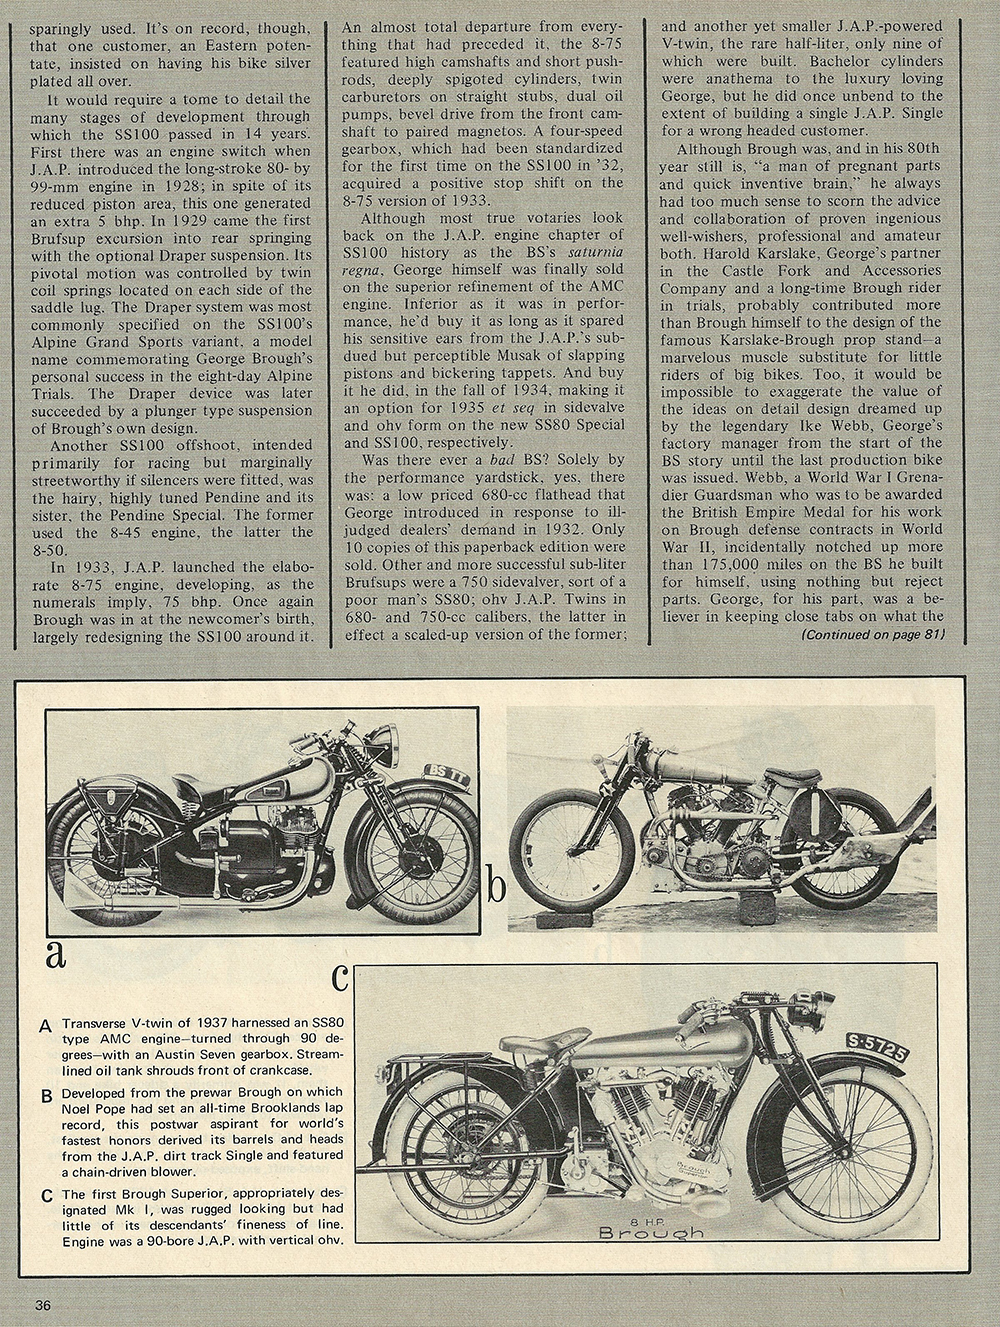 History of Brough Superior 04.jpg